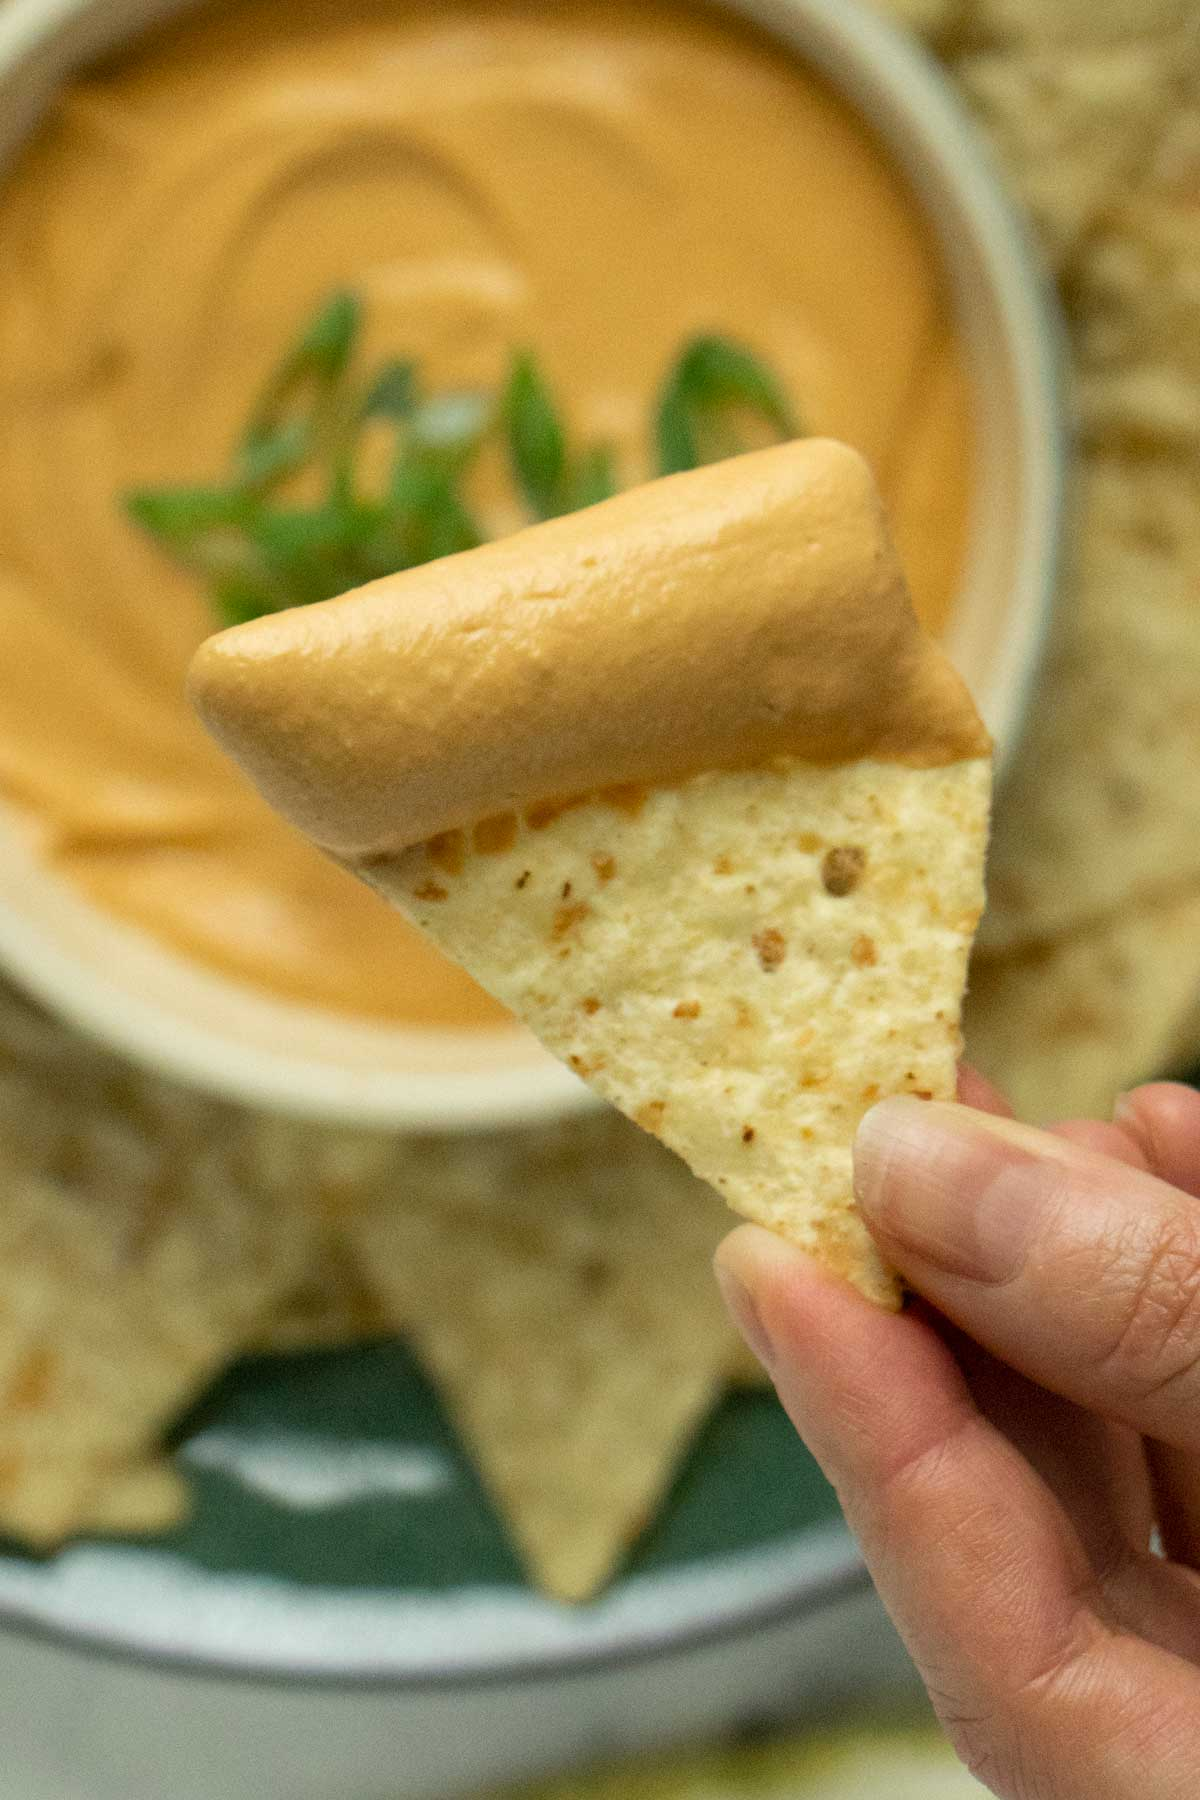 close-up of the vegan queso dip on a tortilla chip